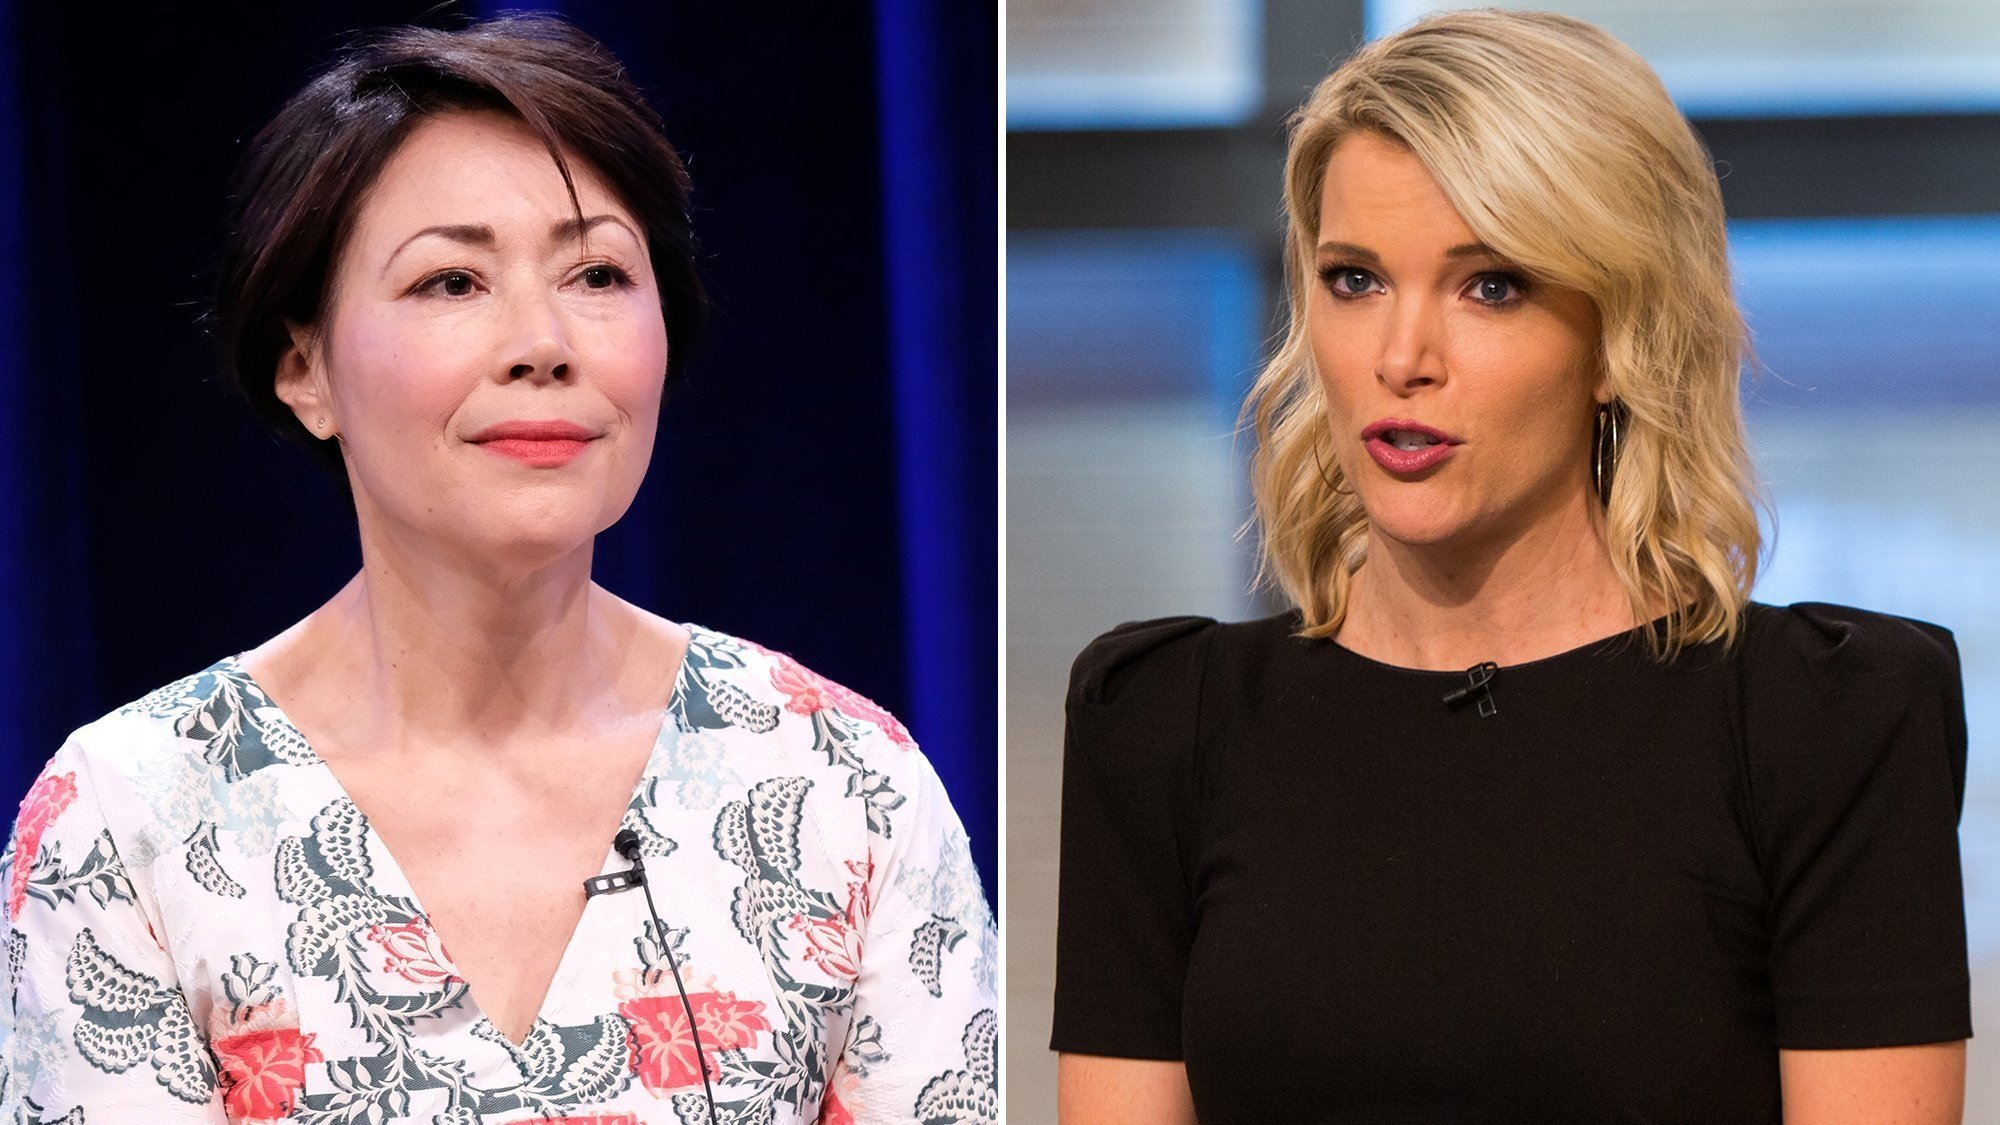 Former 'Today' host Ann Curry slams Megyn Kelly's beef with Jane Fonda